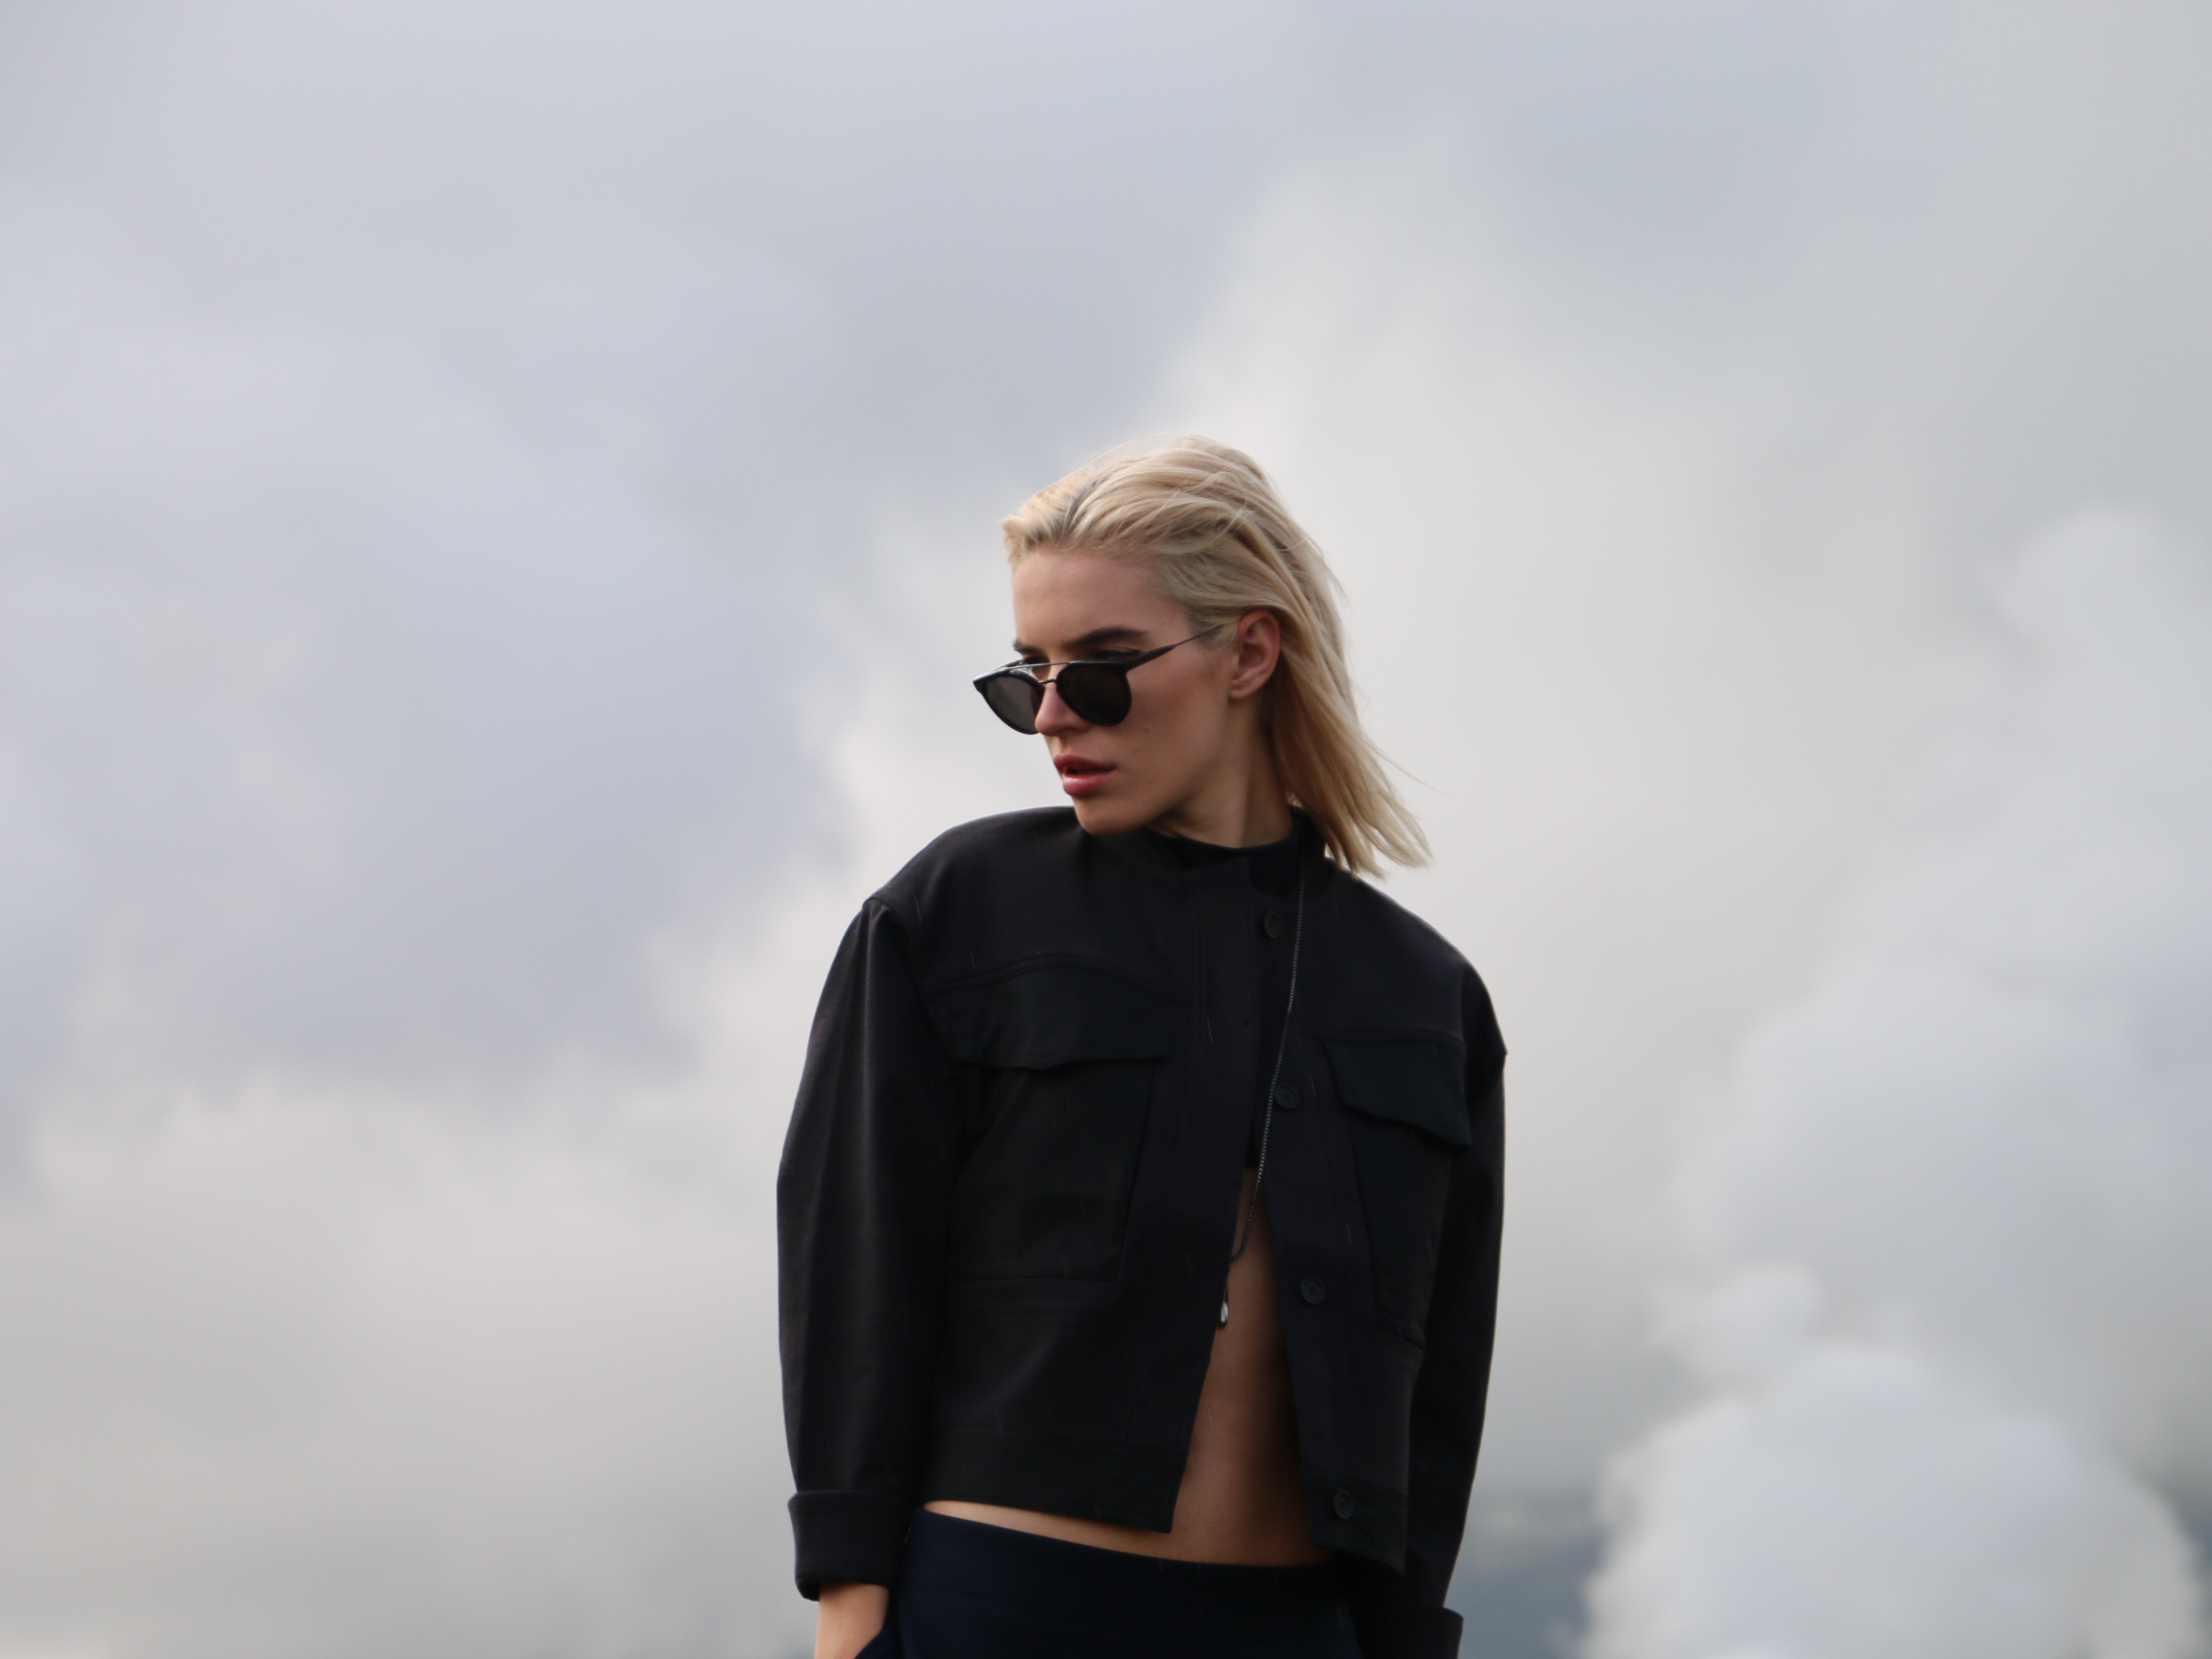 Chloe is wearing GIAGUARO FEMMENA Sunglasses by RETROSUPERFUTURE Cropped Flight Jacket + Front of a Line Skirt by Kit and Ace, JERN X ANTIQUED STEEL Pendant by Vitaly